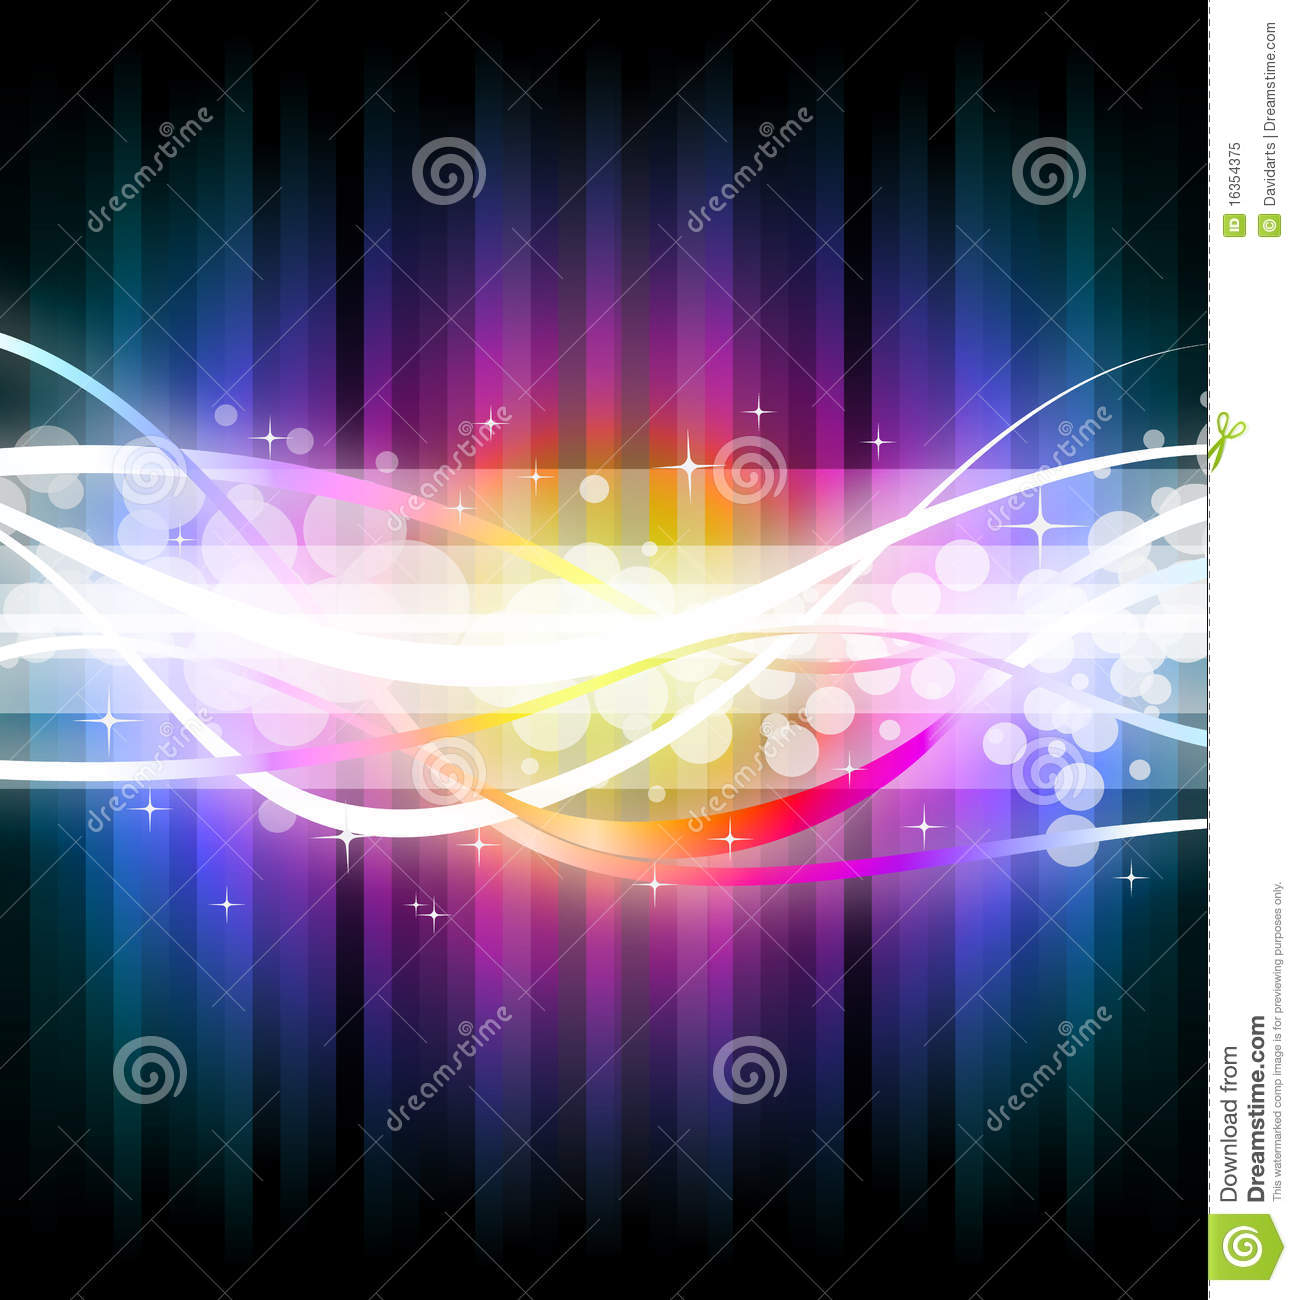 Colorful Business Background For Flyers Royalty Free Stock